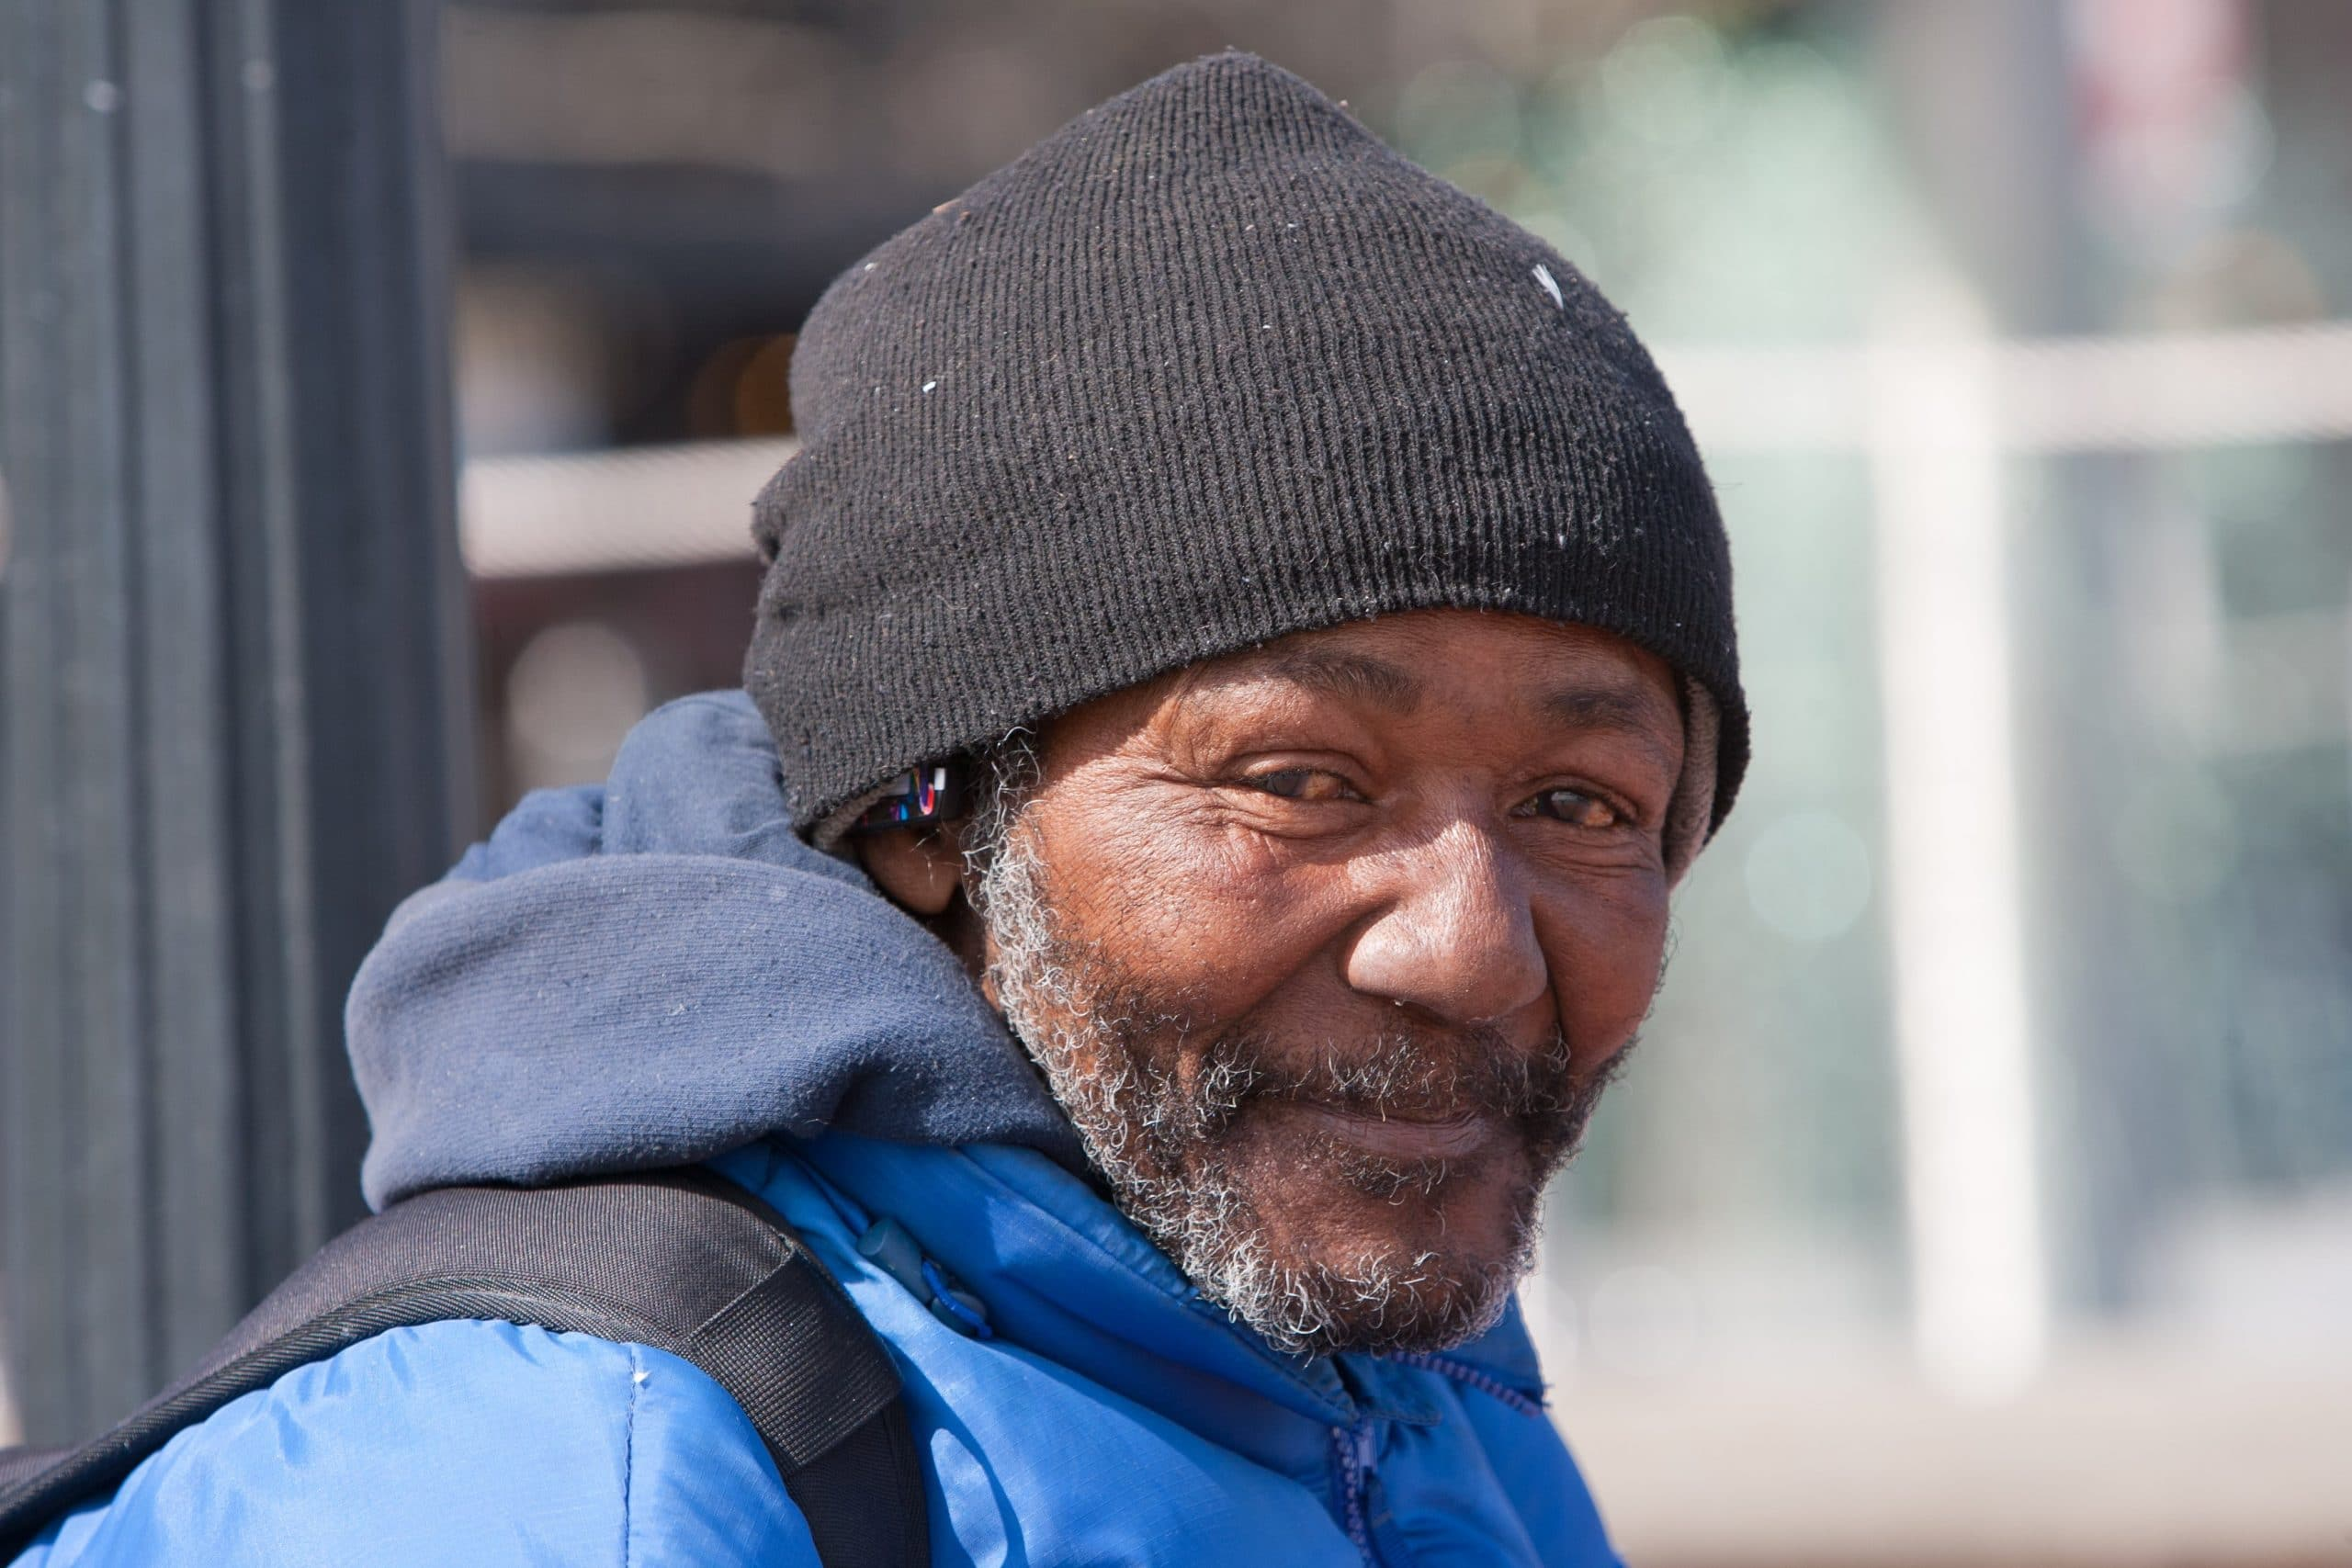 Homeless man wearing a hat and smiling to the camera